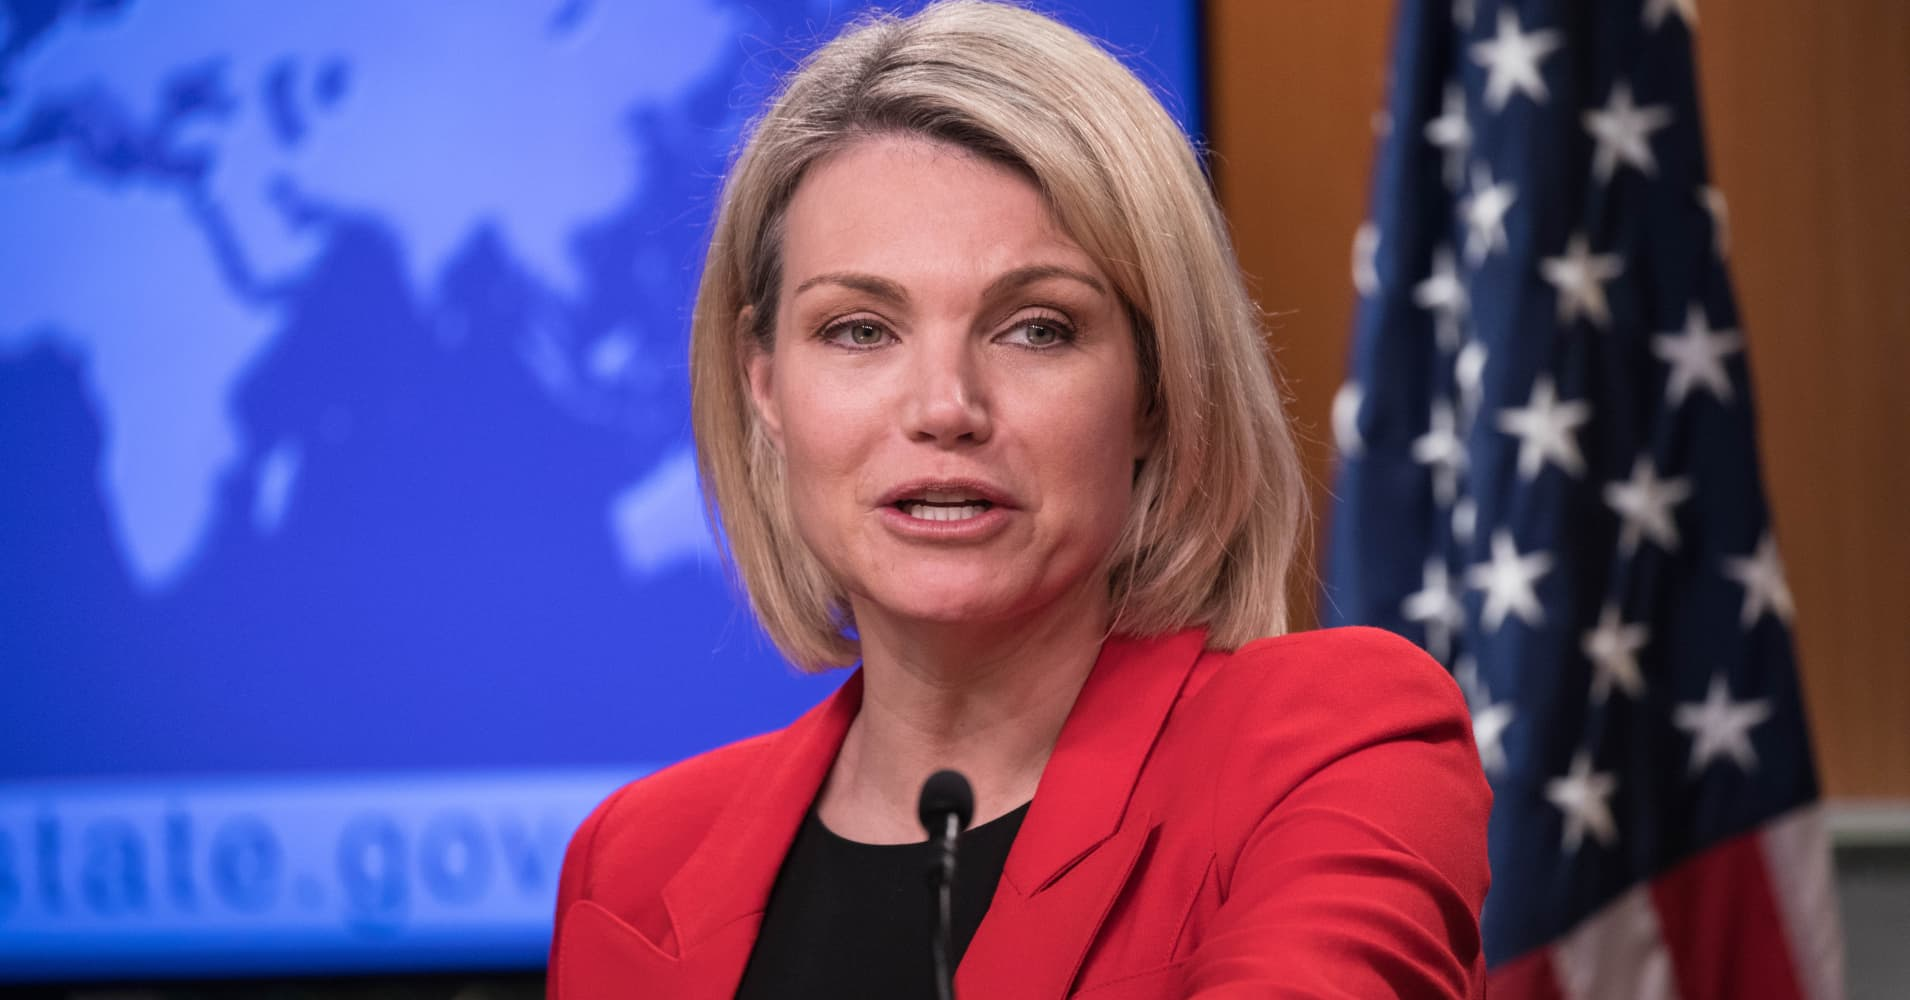 Ex-Fox News anchor Heather Nauert withdraws from consideration as UN ambassador